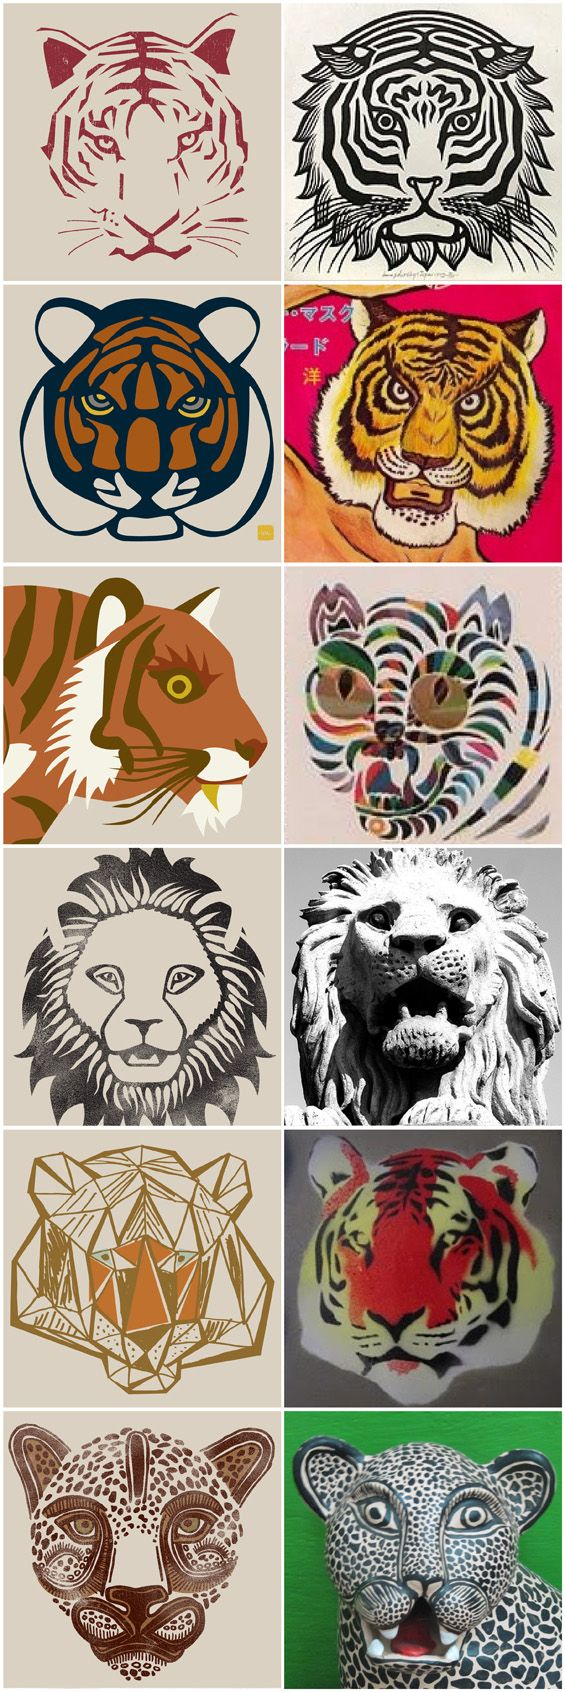 Tea Collection Tiger faces and corresponding cultural inspiration